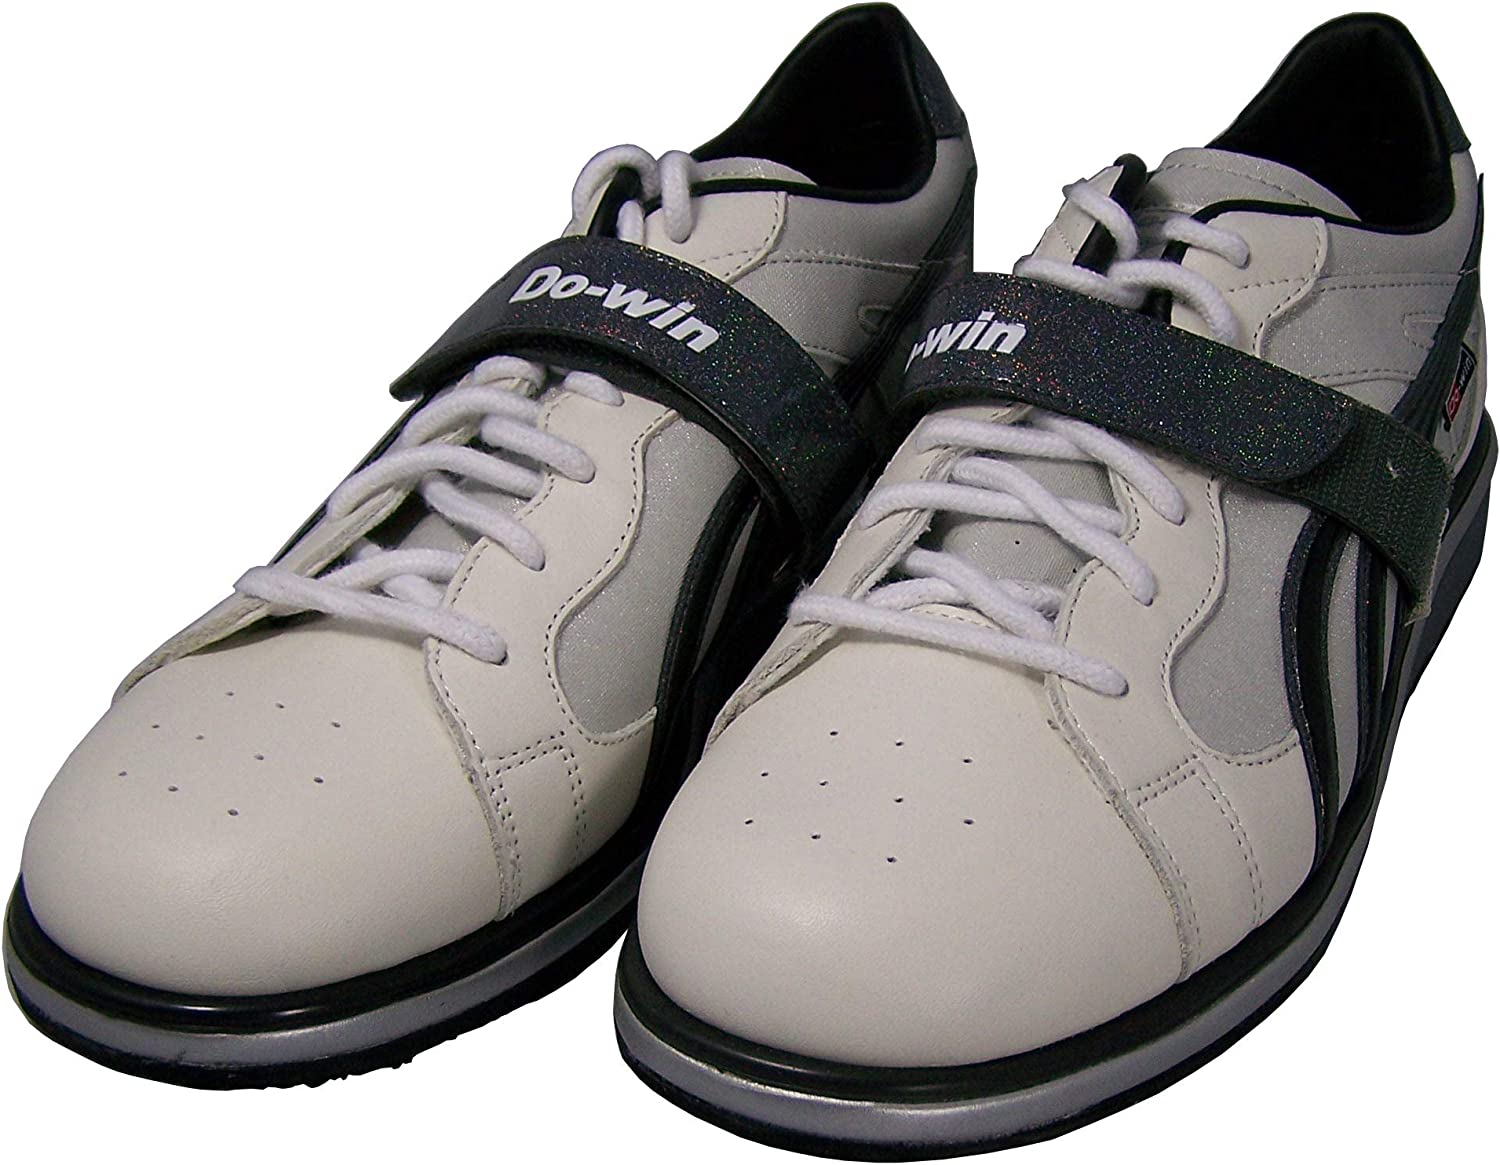 good shoes for weight training